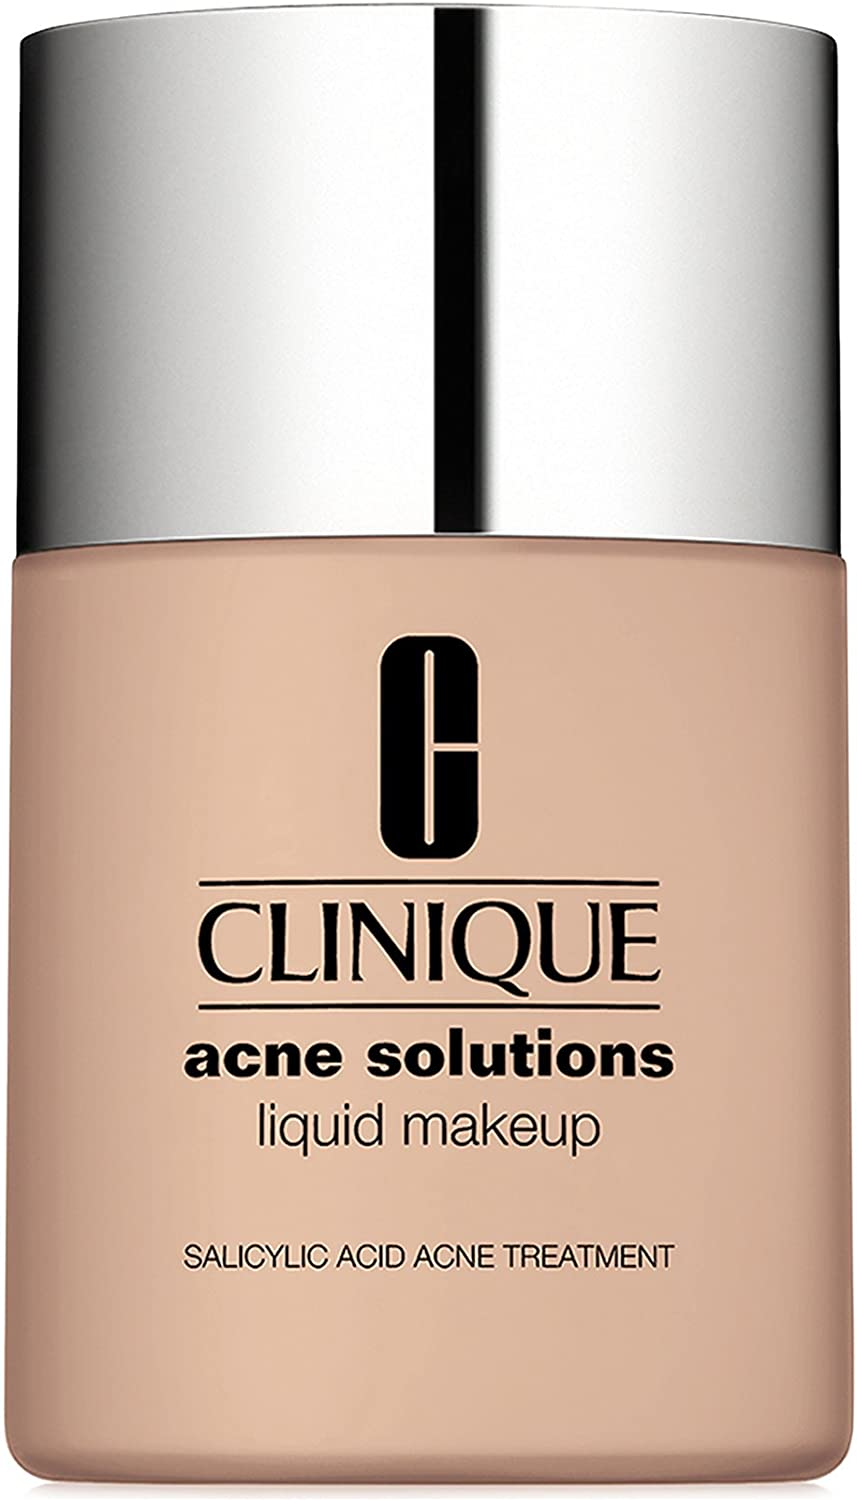 New! Clinique Acne Solutions Liquid Makeup, 1 oz / 30 ml, 02 Fresh Ivory (VF-N)